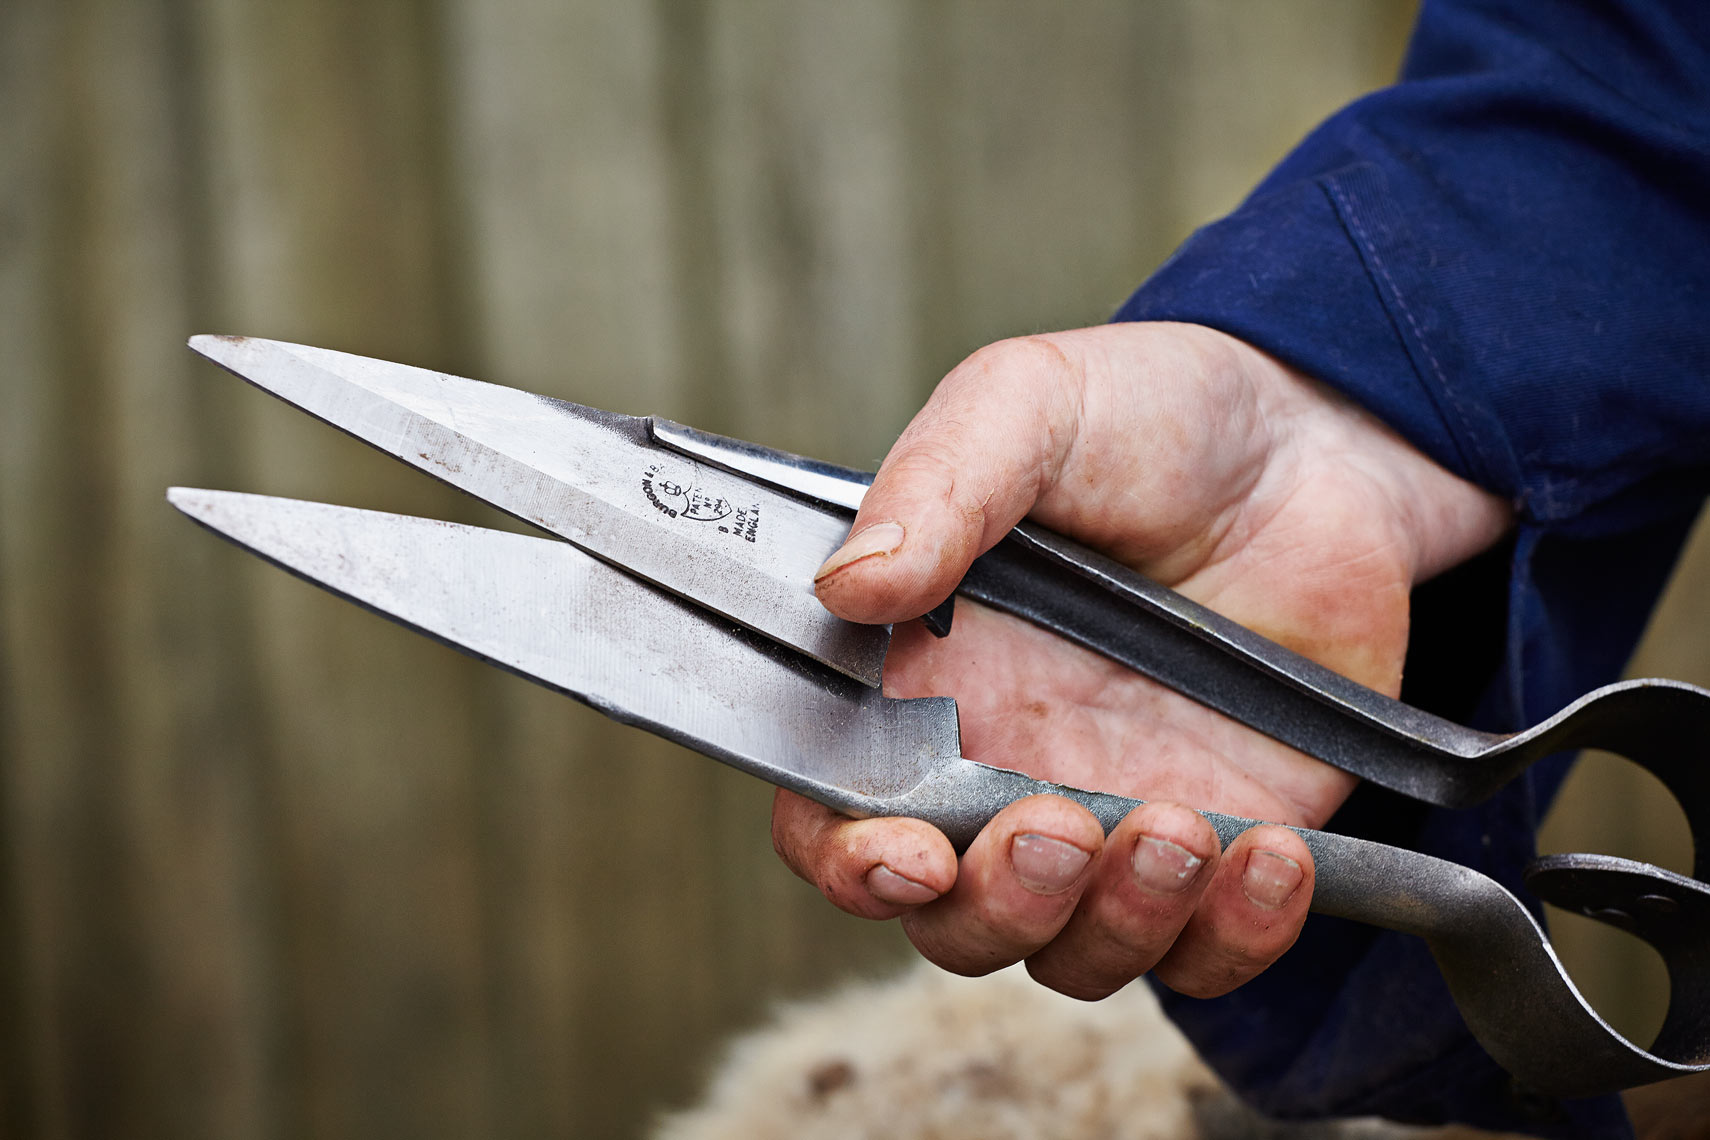 Sheep shears